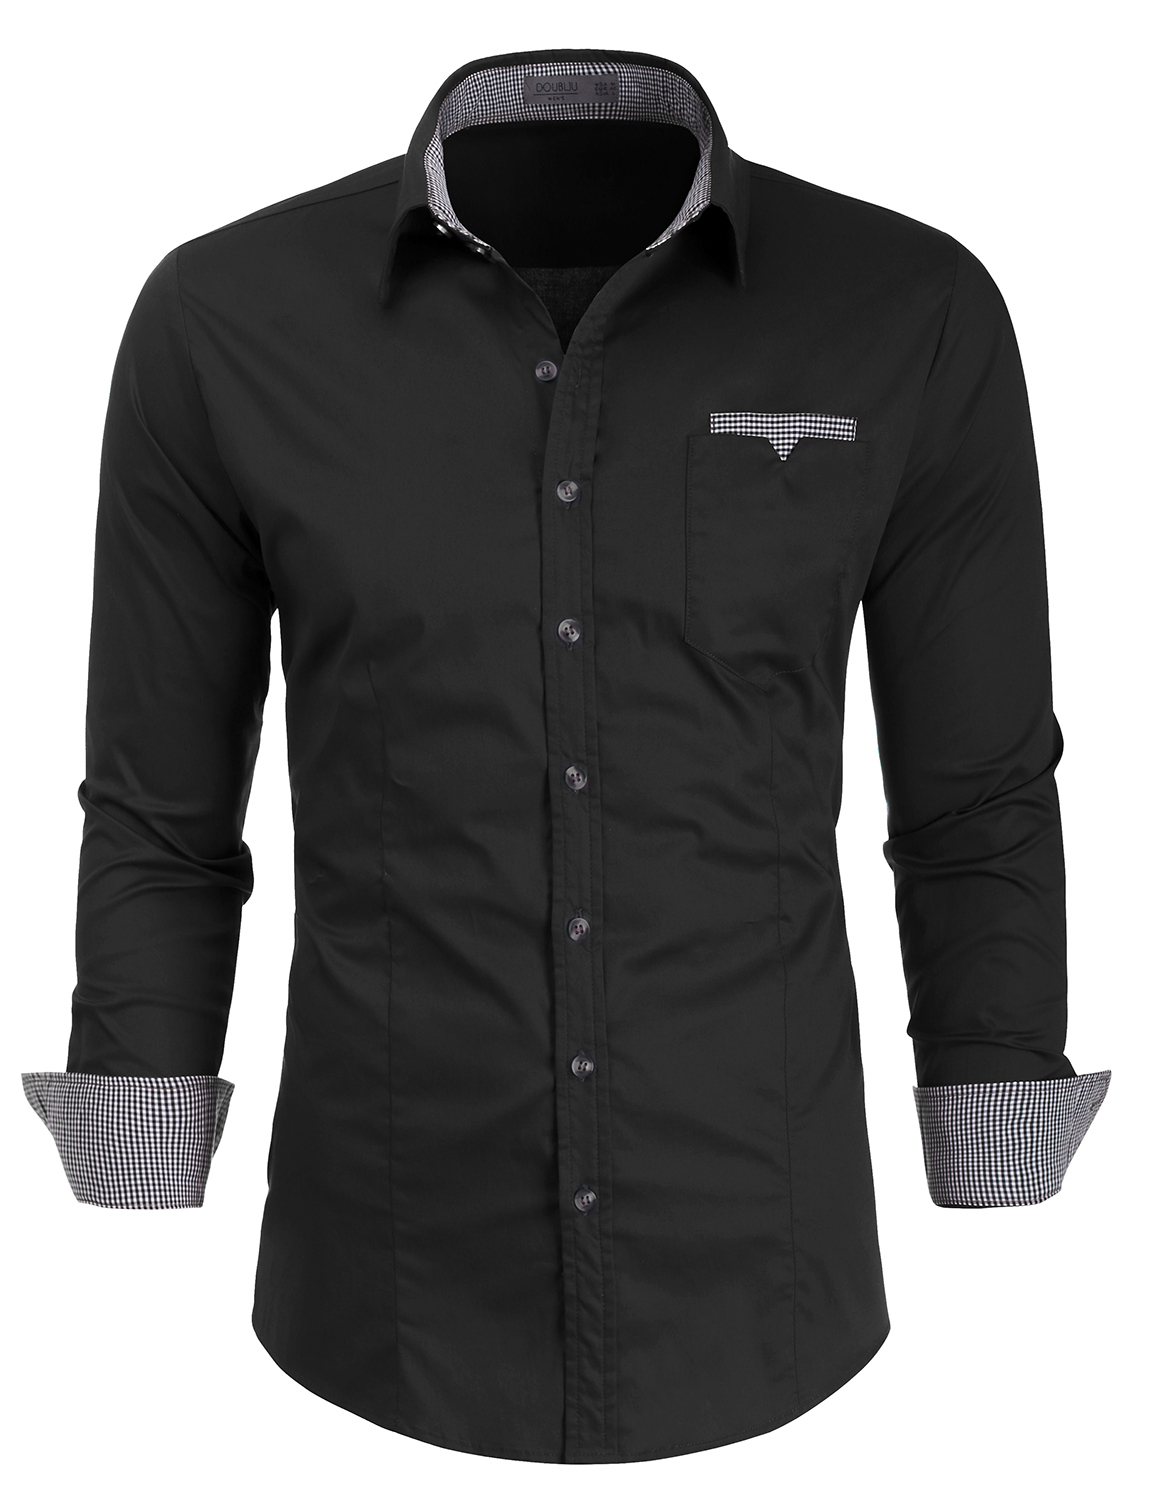 Doublju Mens Long Sleeve Slim Fit Casual Shirts with Flannel Detail